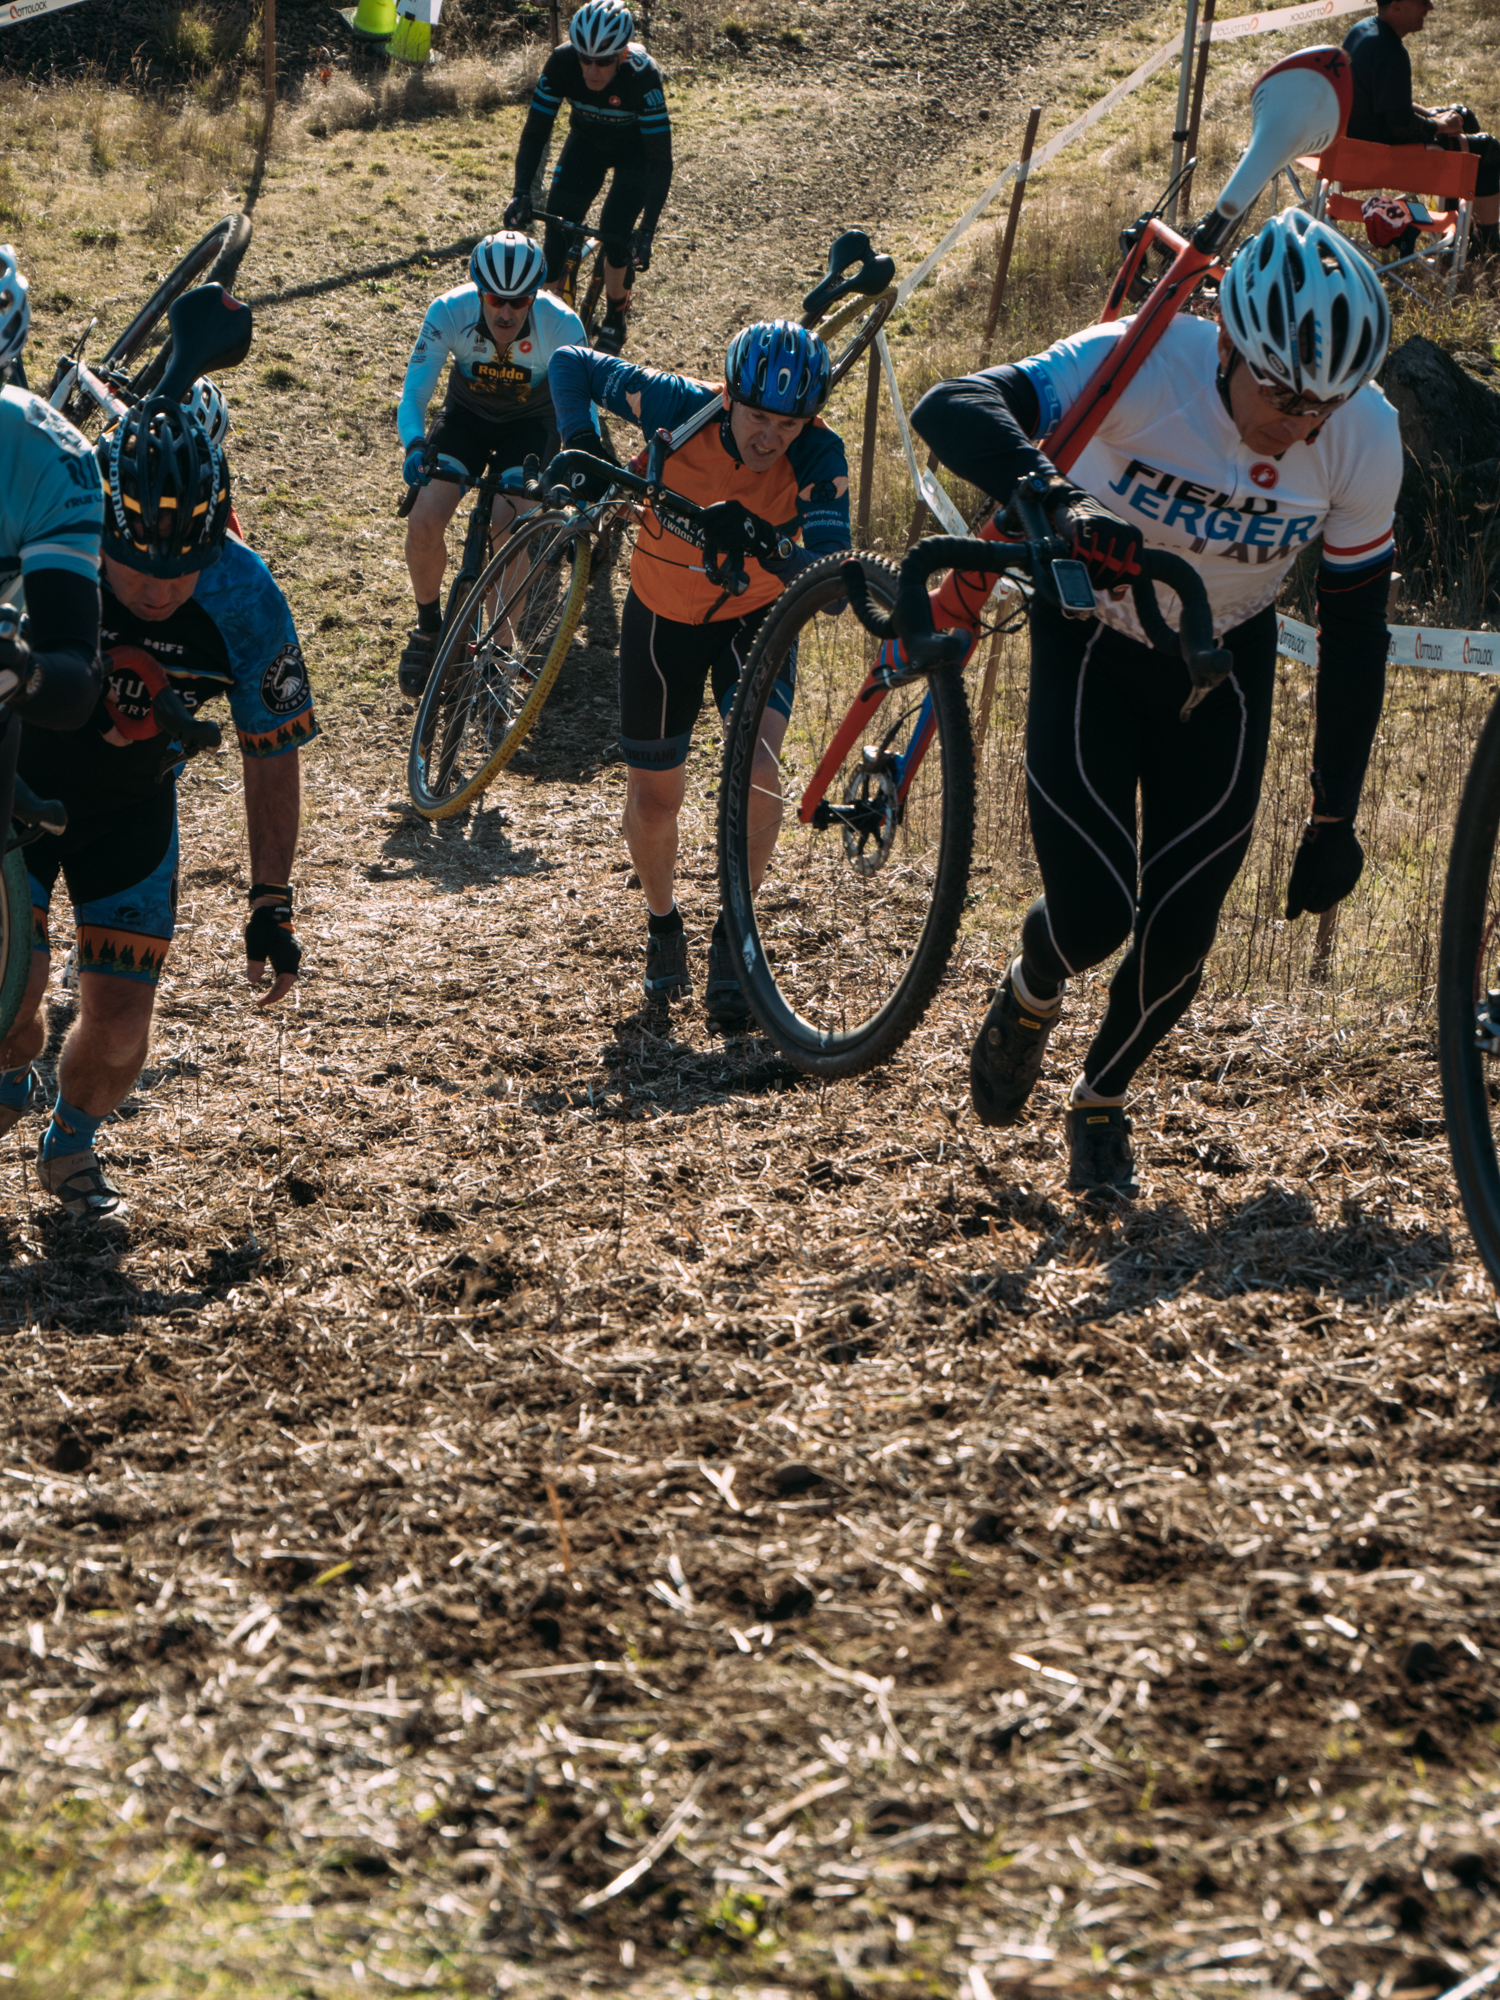 Cyclocross18_CCCX_BartonPark-mettlecycling37.jpg